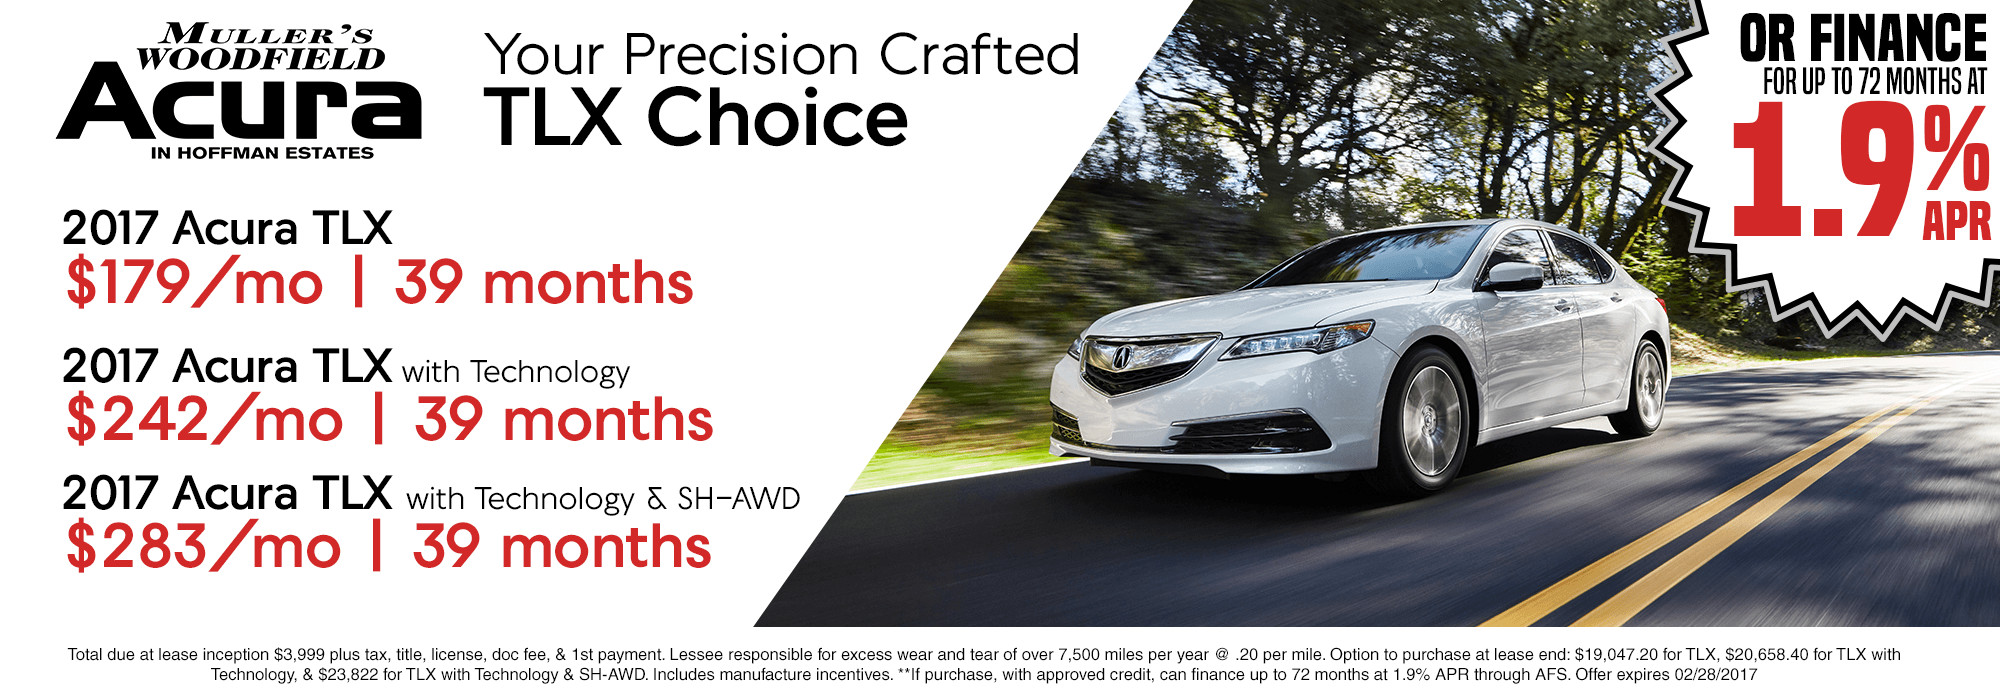 New Vehicle Specials - Muller's Woodfield Acura on